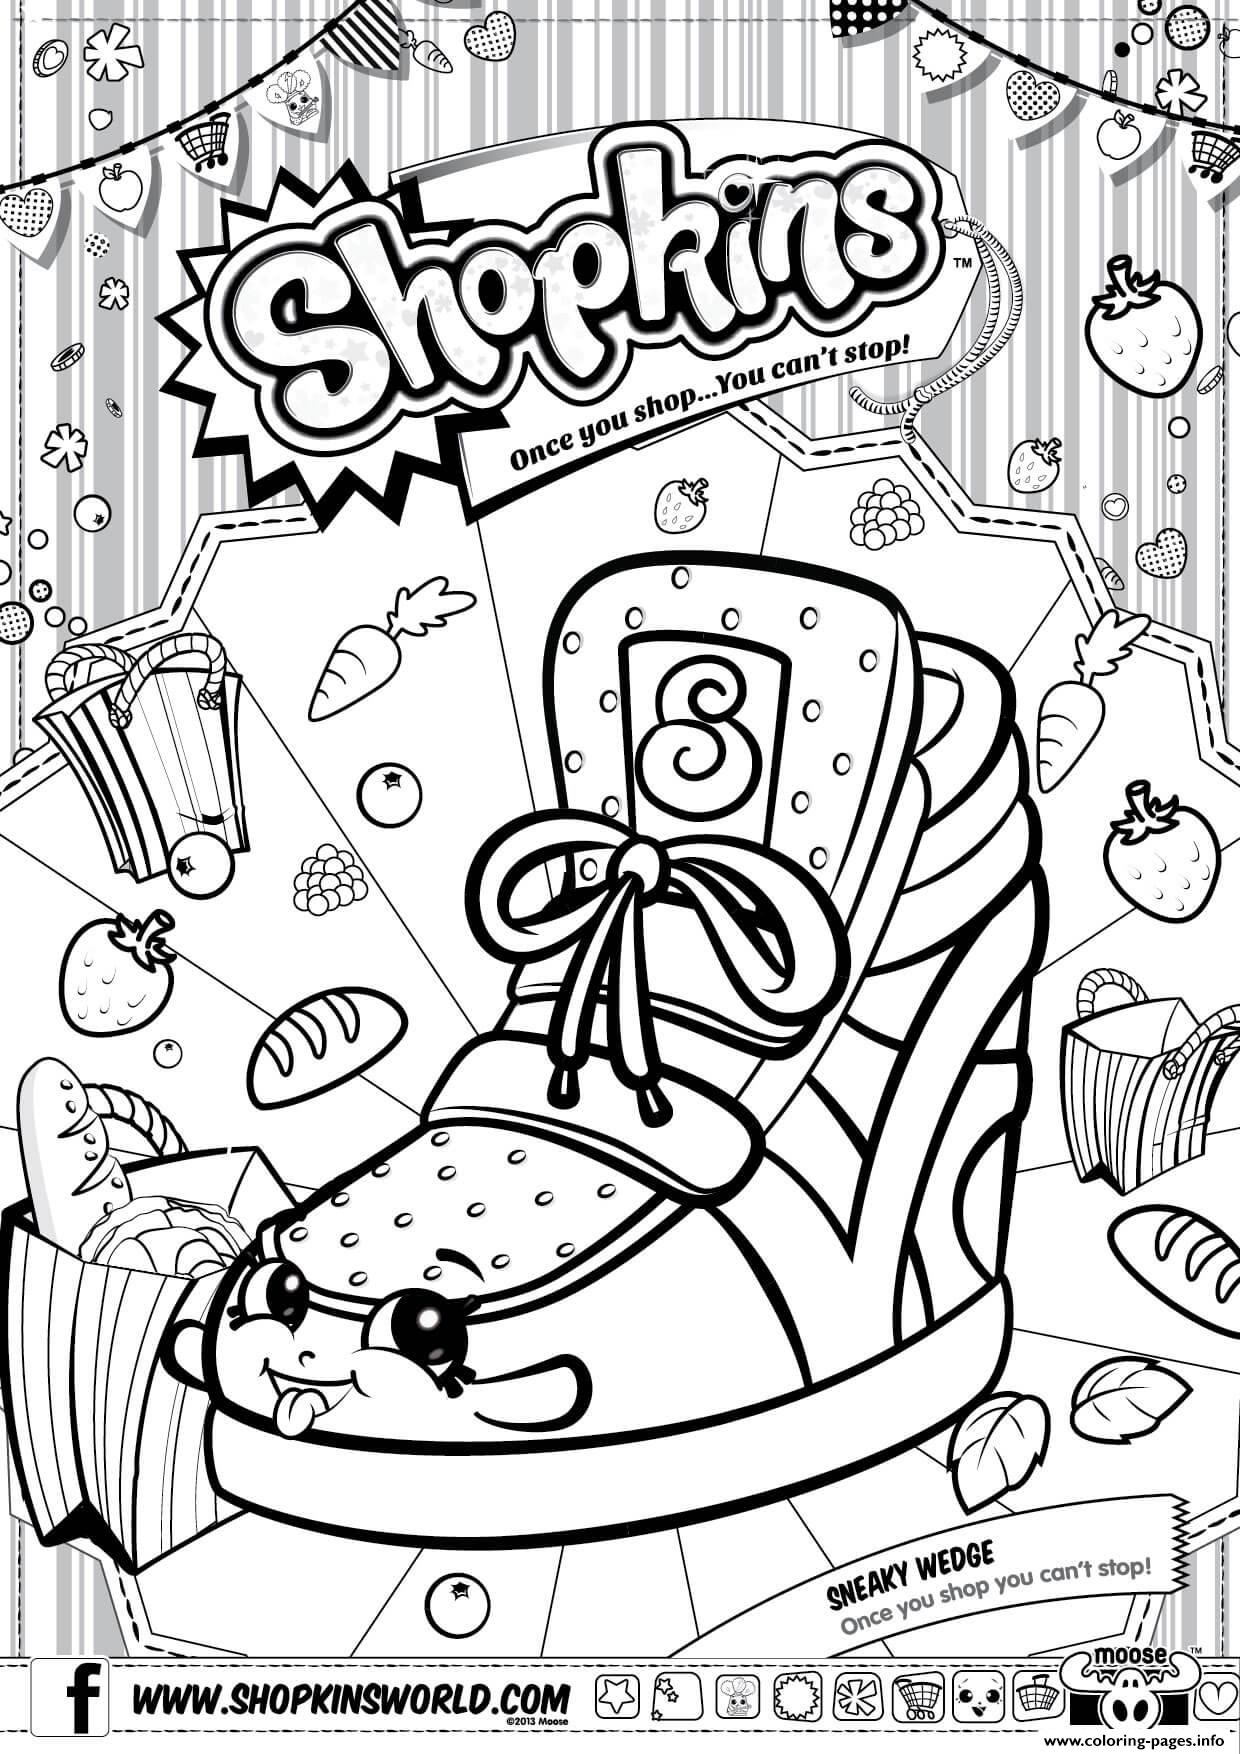 Shopkins Sneaky Wedge Coloring Pages